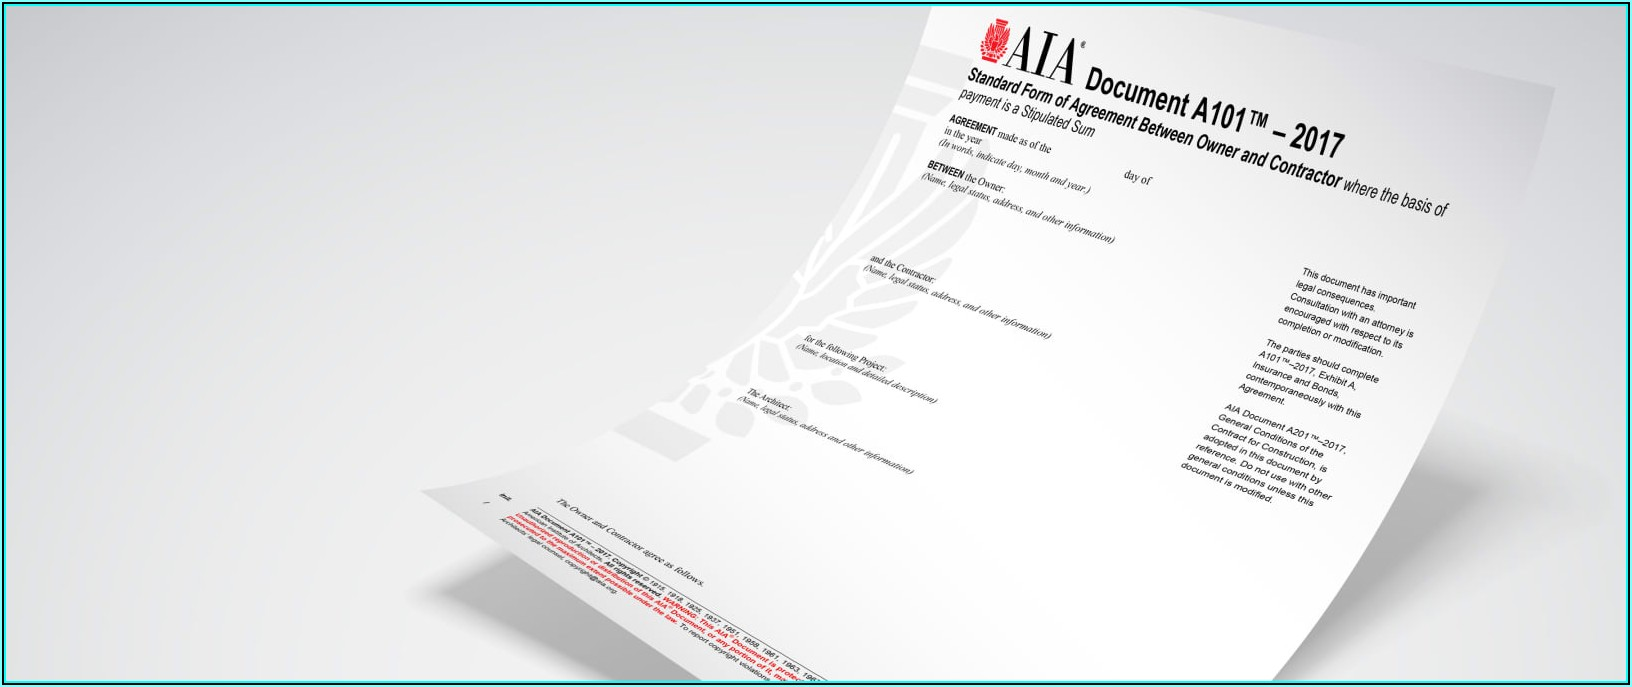 Aia Subcontractor Agreement Short Form